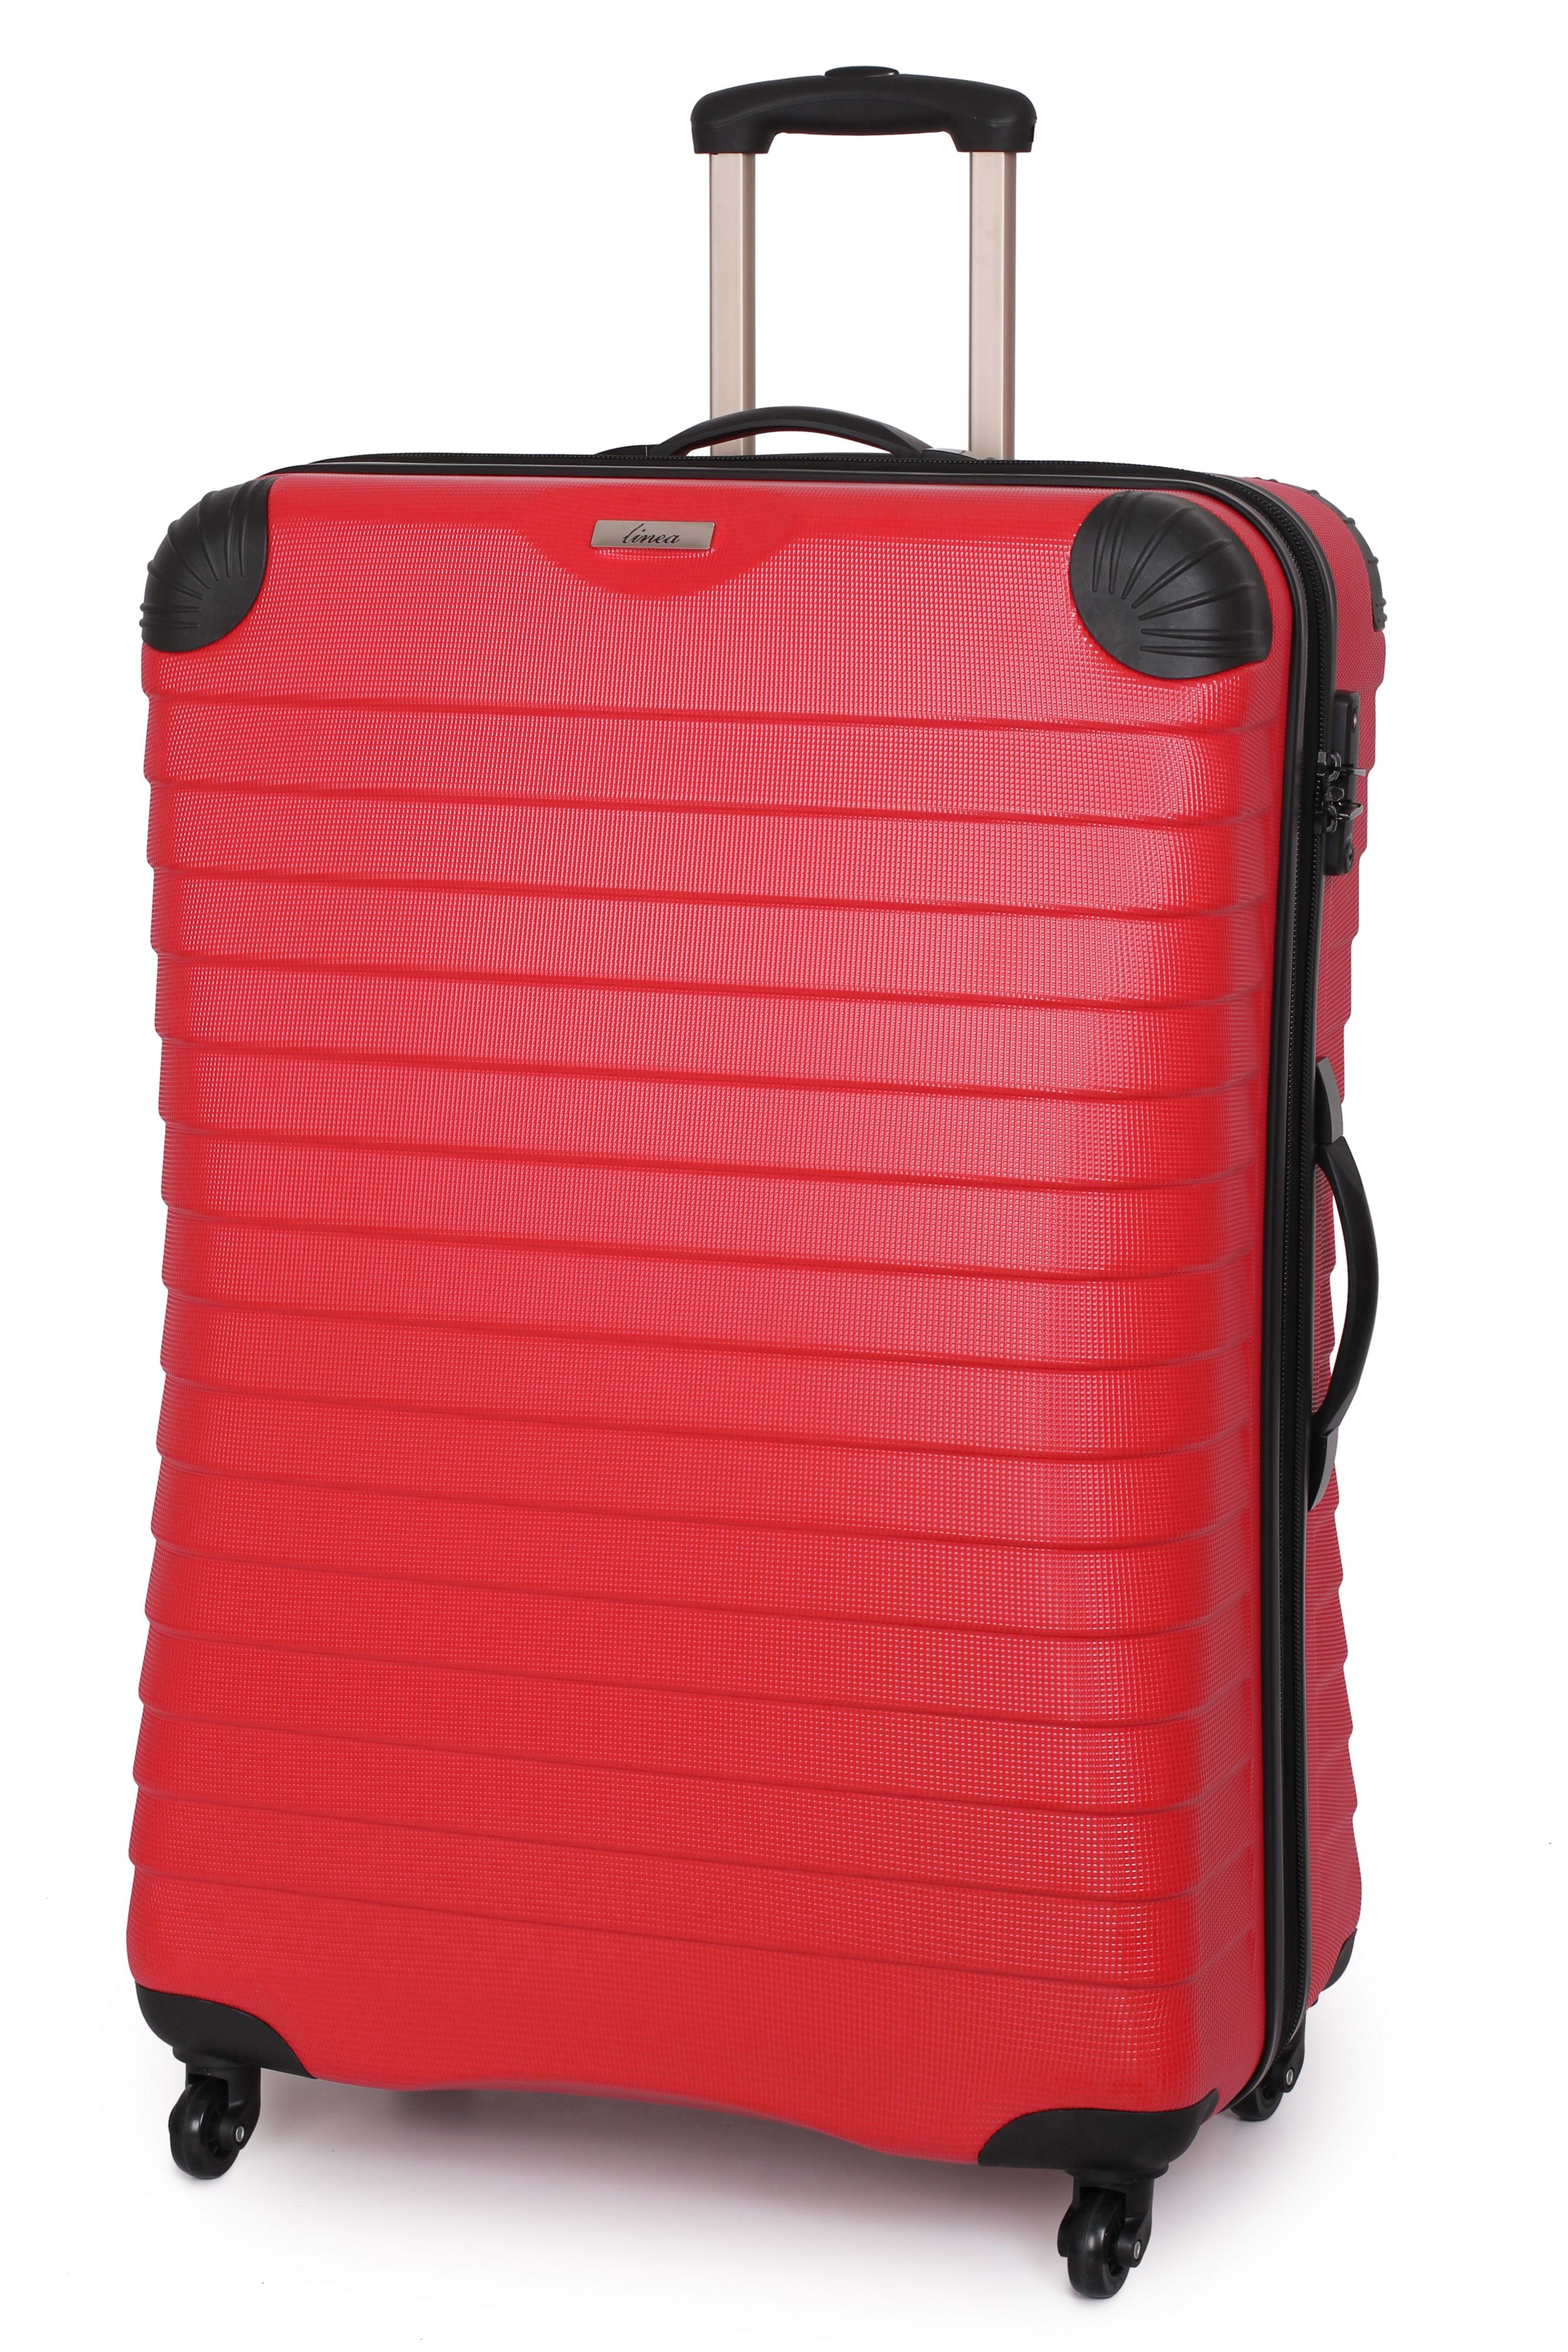 Linea Shell red 4 wheel hard large suitcase Red